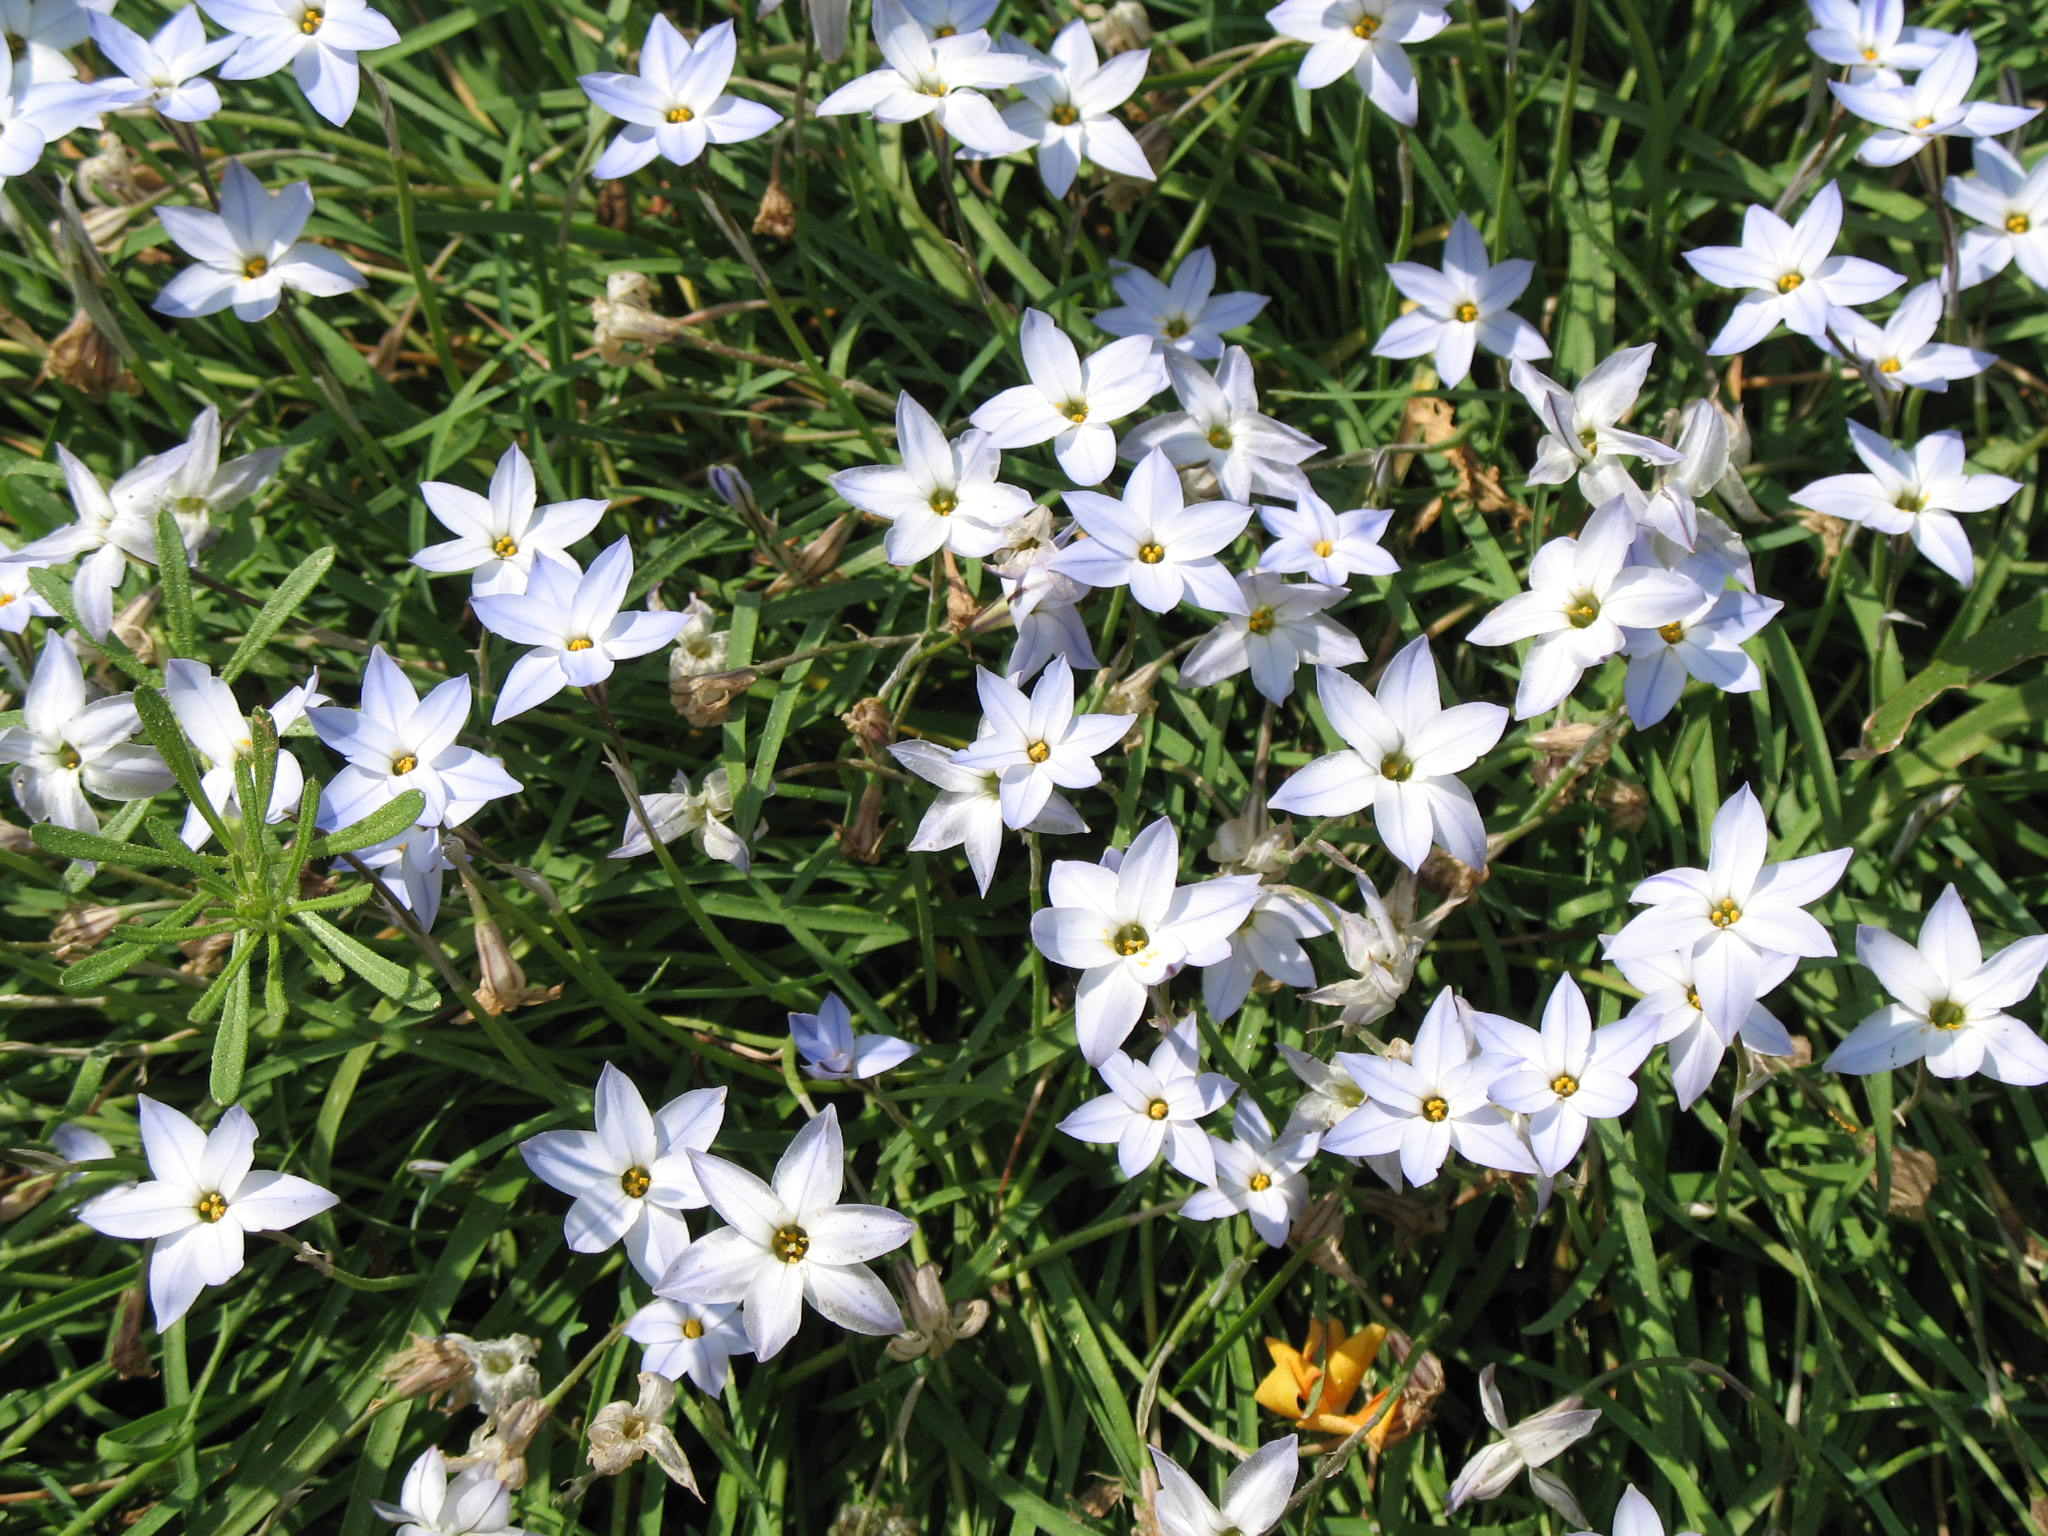 Ipheion uniflorum 'Wisley Blue'   / Ipheion uniflorum 'Wisley Blue'